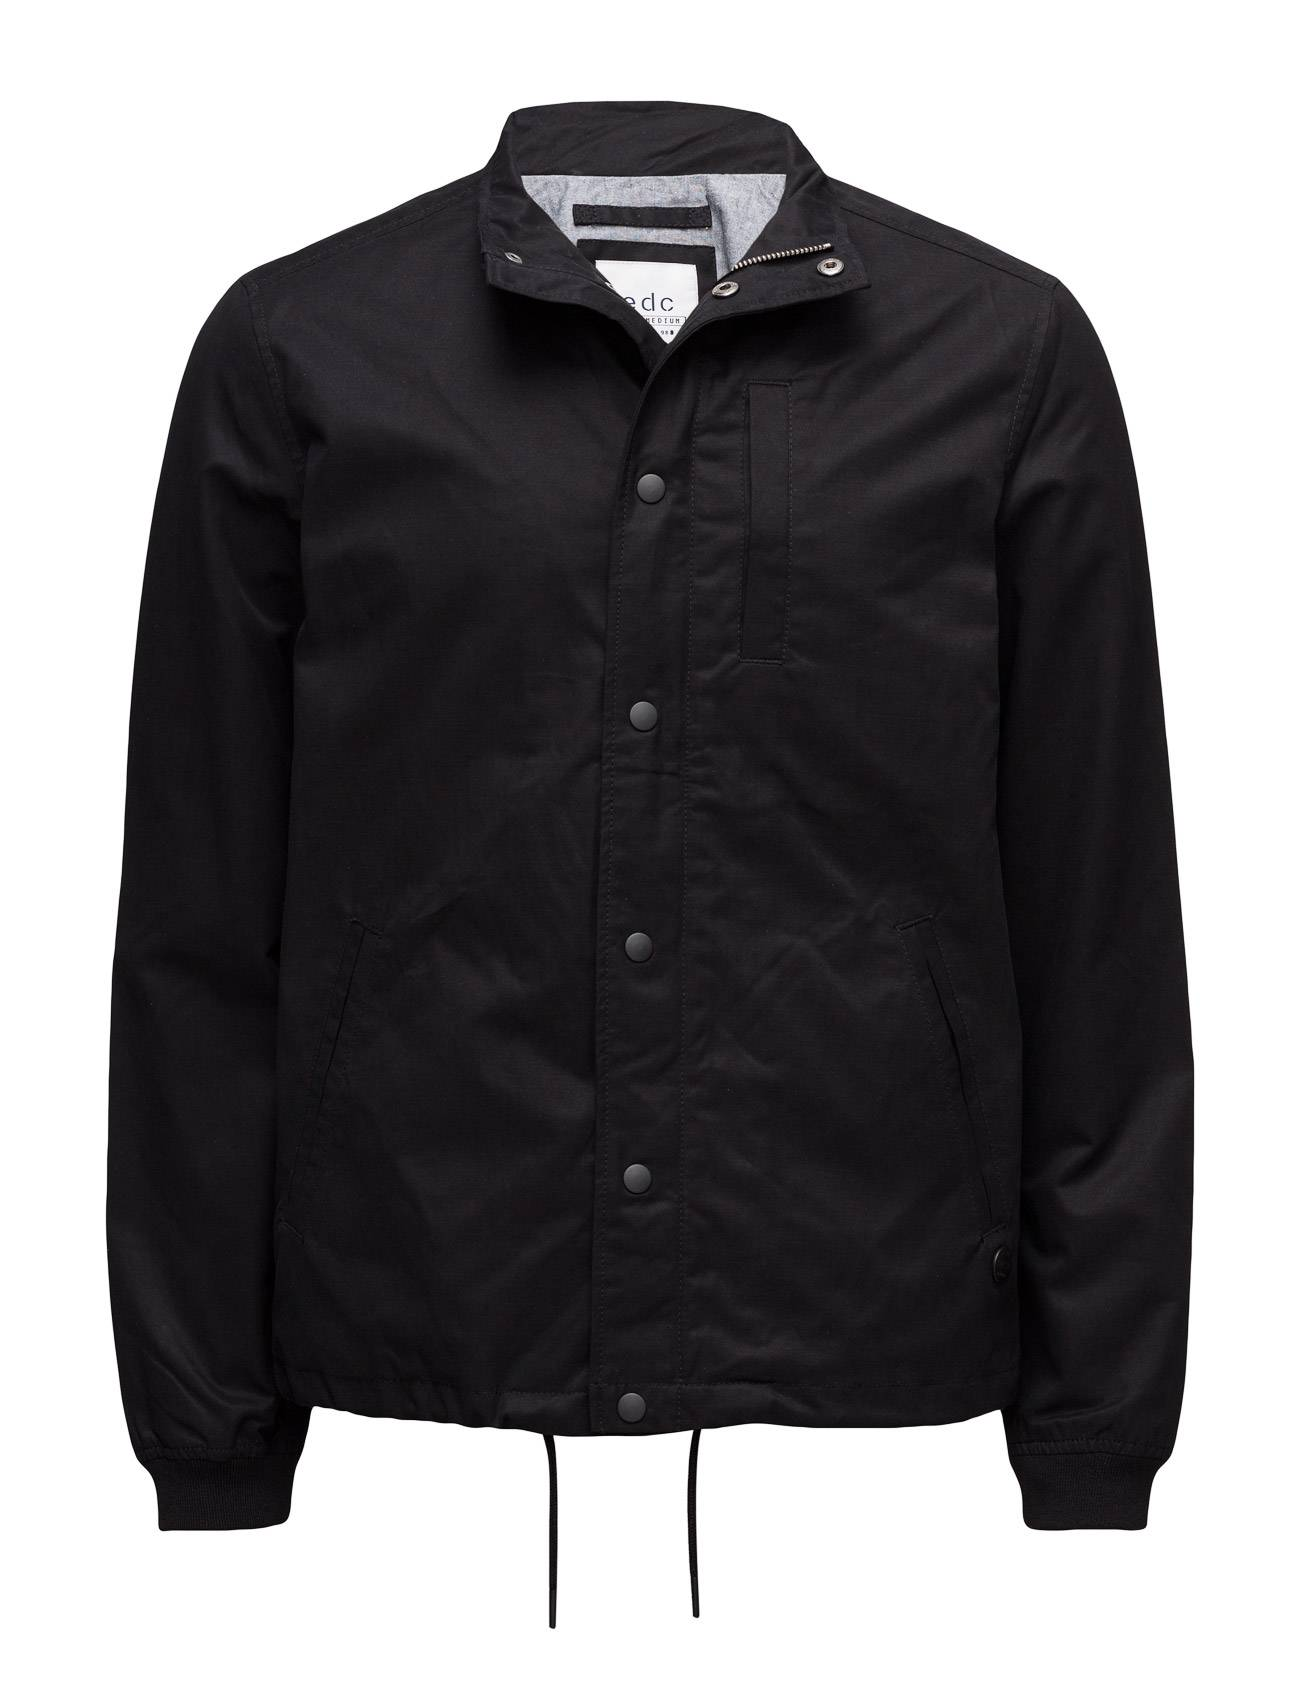 EDC by Esprit Jackets Outdoor Woven